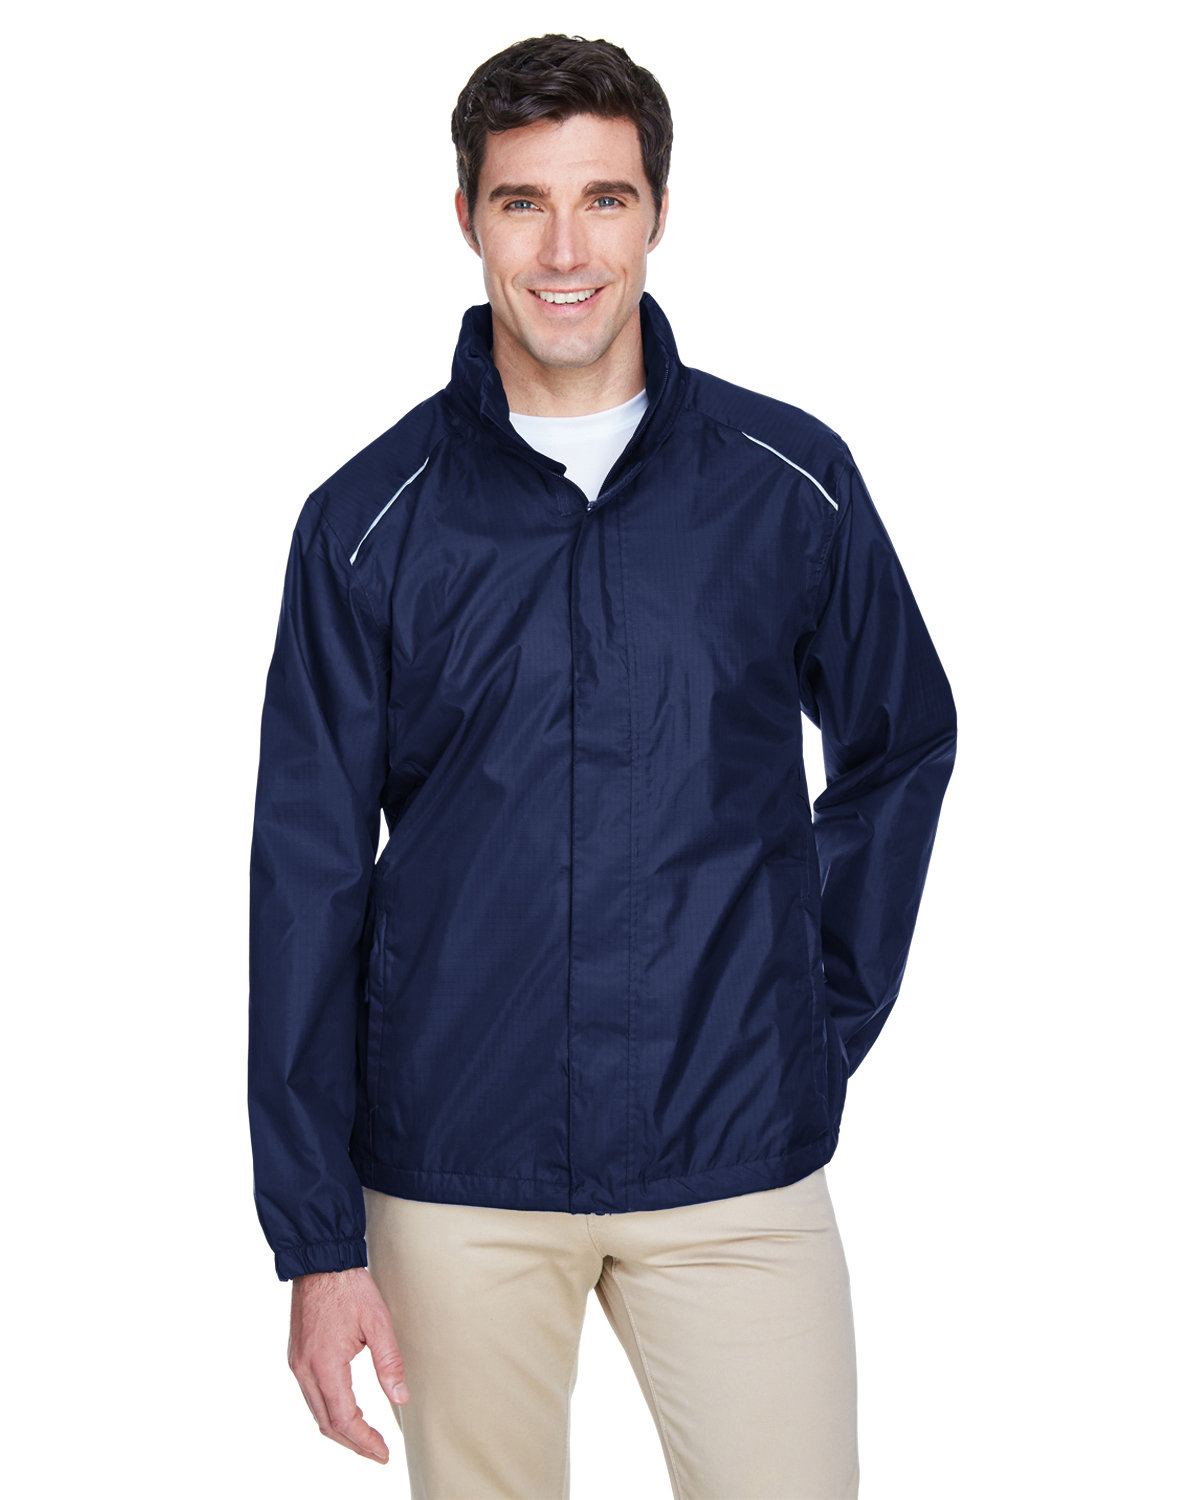 Core 365 Men's Climate Seam-Sealed Lightweight Variegated Ripstop Jacket CLASSIC NAVY